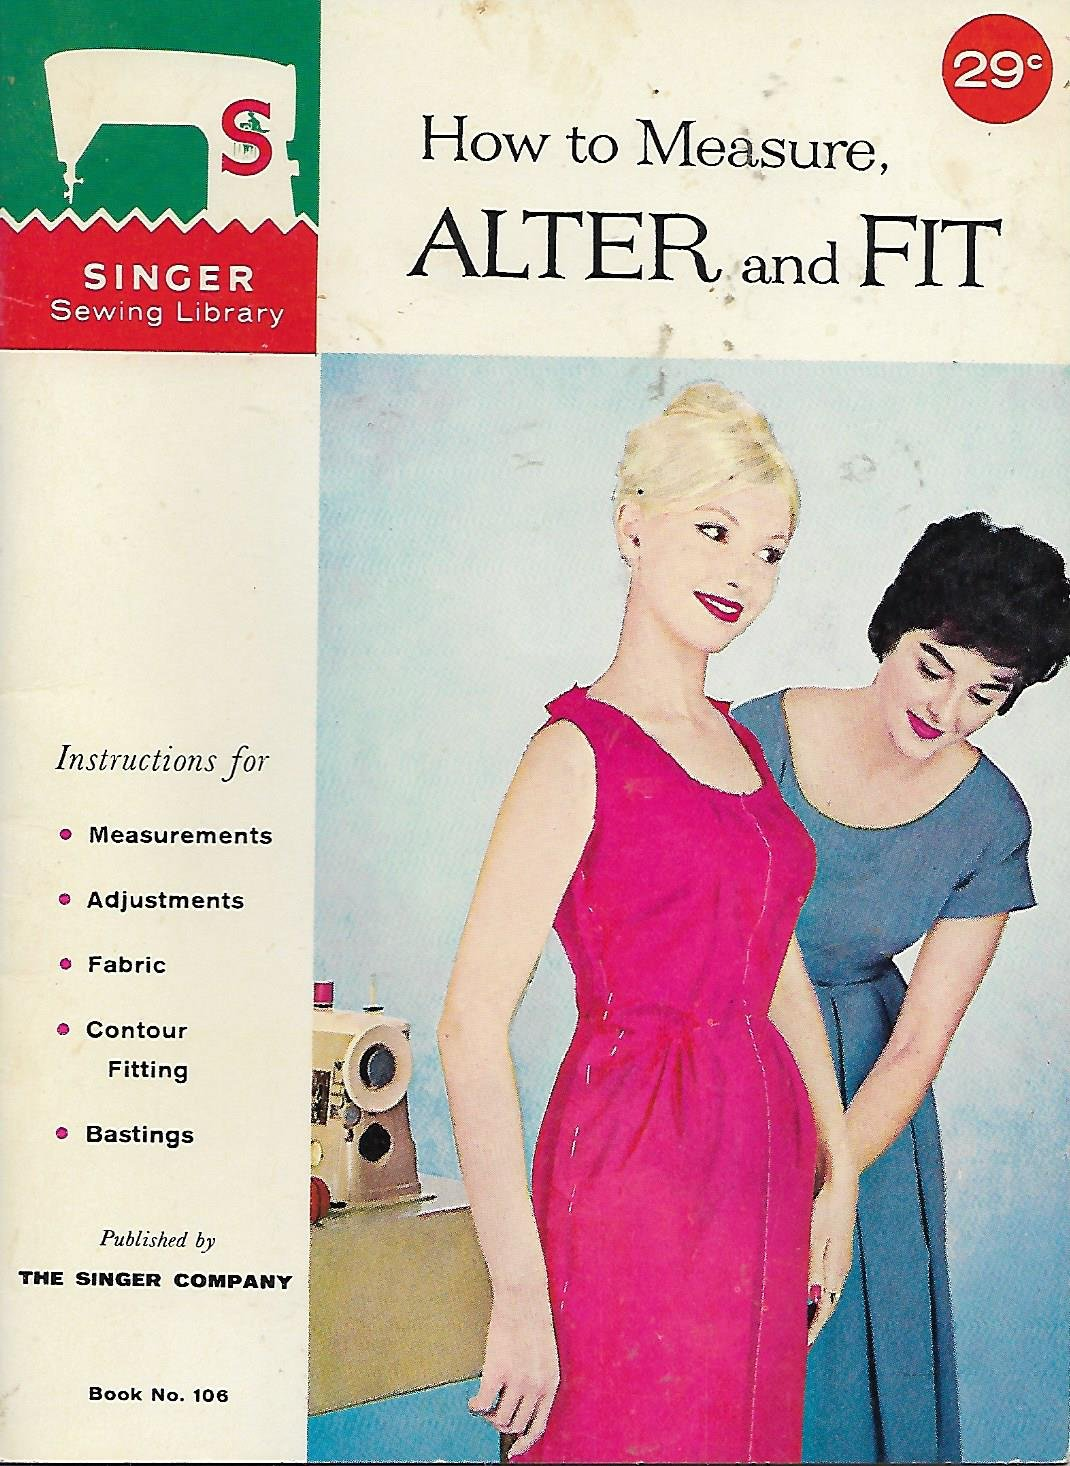 Vintage Singer Sewing Library (1960) How to Measure, Alter and Fit Book